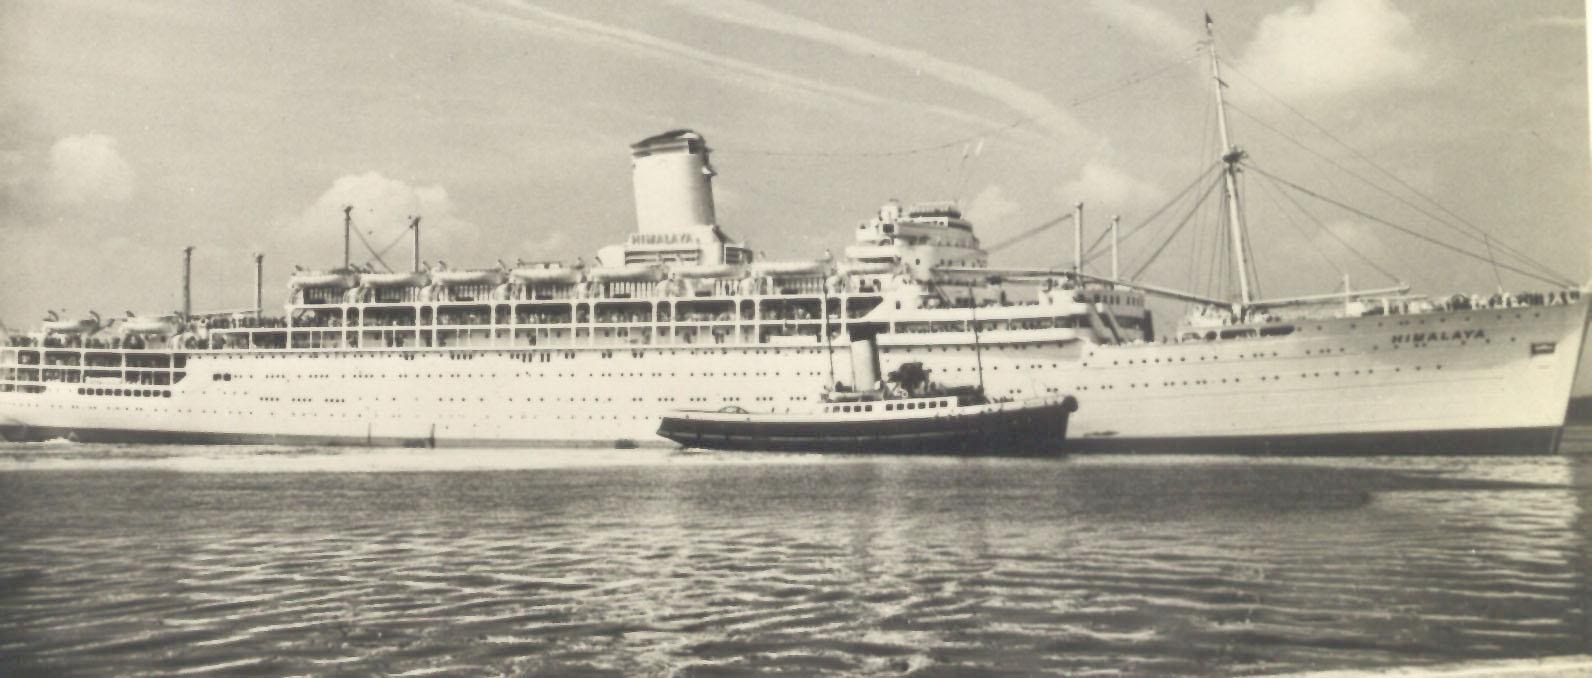 Built by Vickers-Armstrong Ltd, Barrow-In-Furness, England.  Launched on 5 October 1948 by Lady Currie and completed in August 1949.  The vessel made her inaugural voyage on 6 October 1949 from London - Sydney.  Base Port:  London Gross Tonnage:  27989